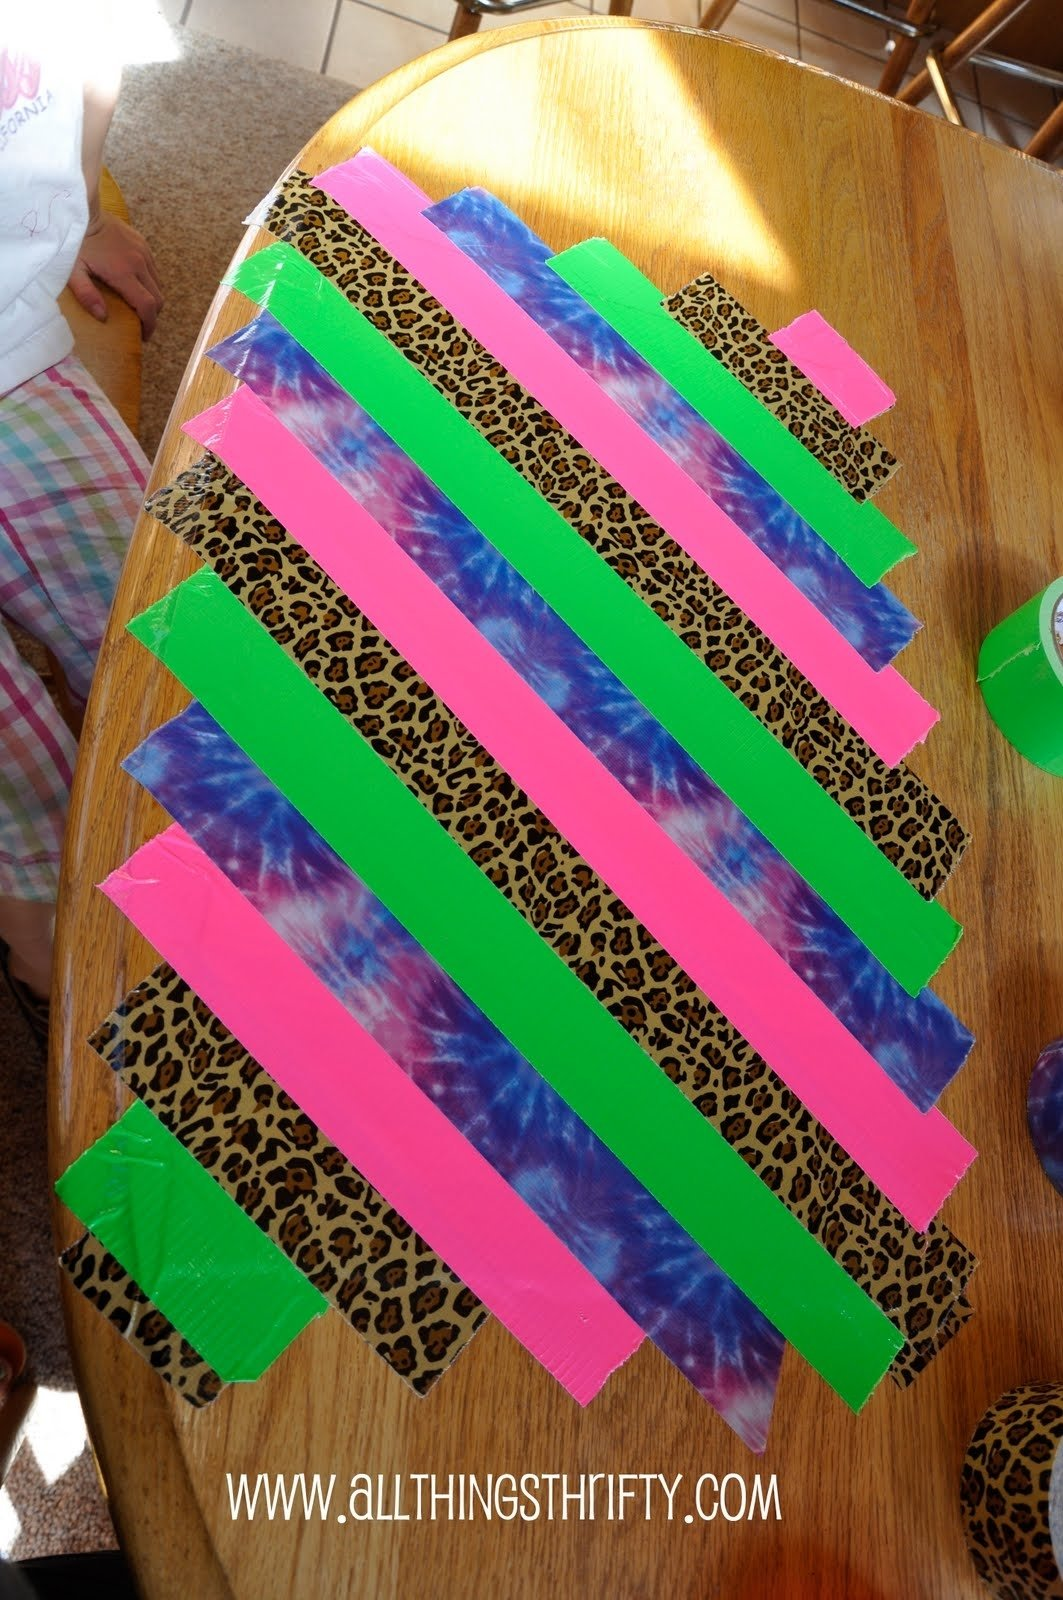 10 Spectacular Duct Tape Ideas For Kids tutorial how to make duct tape purses all things thrifty 2020